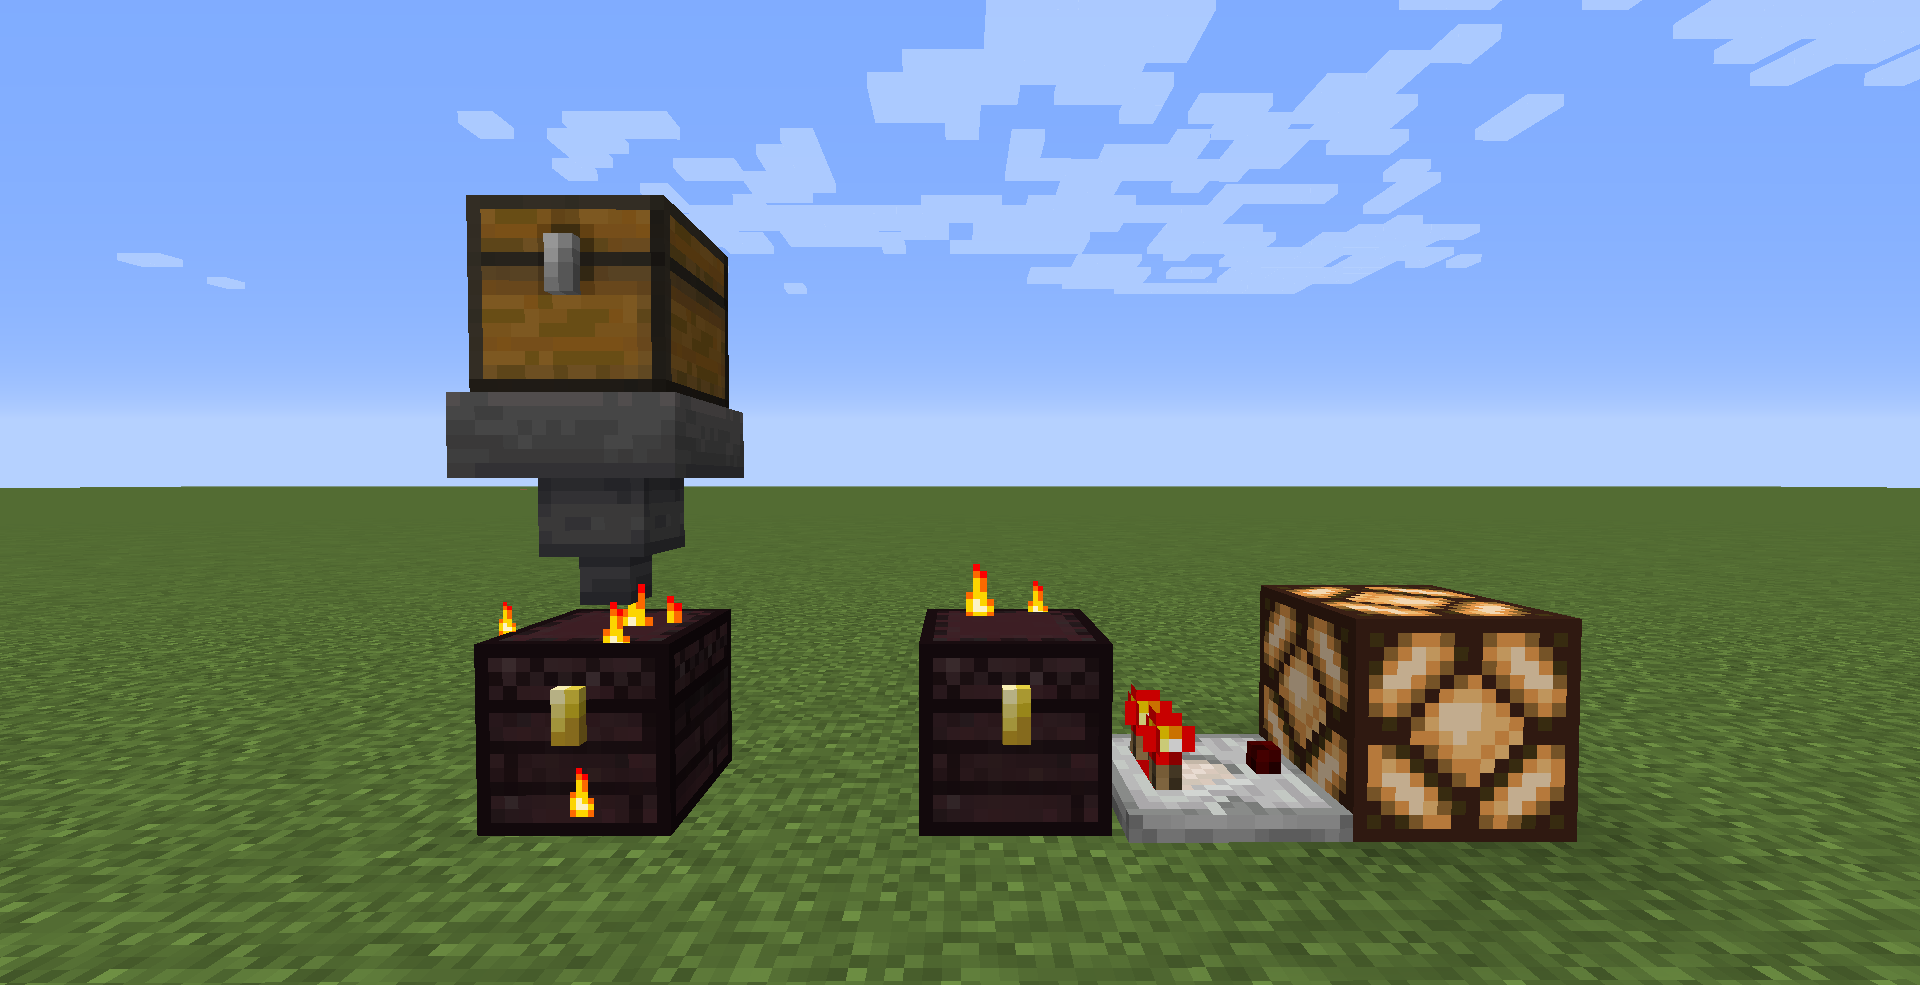 Hoppers/Comparators actually work